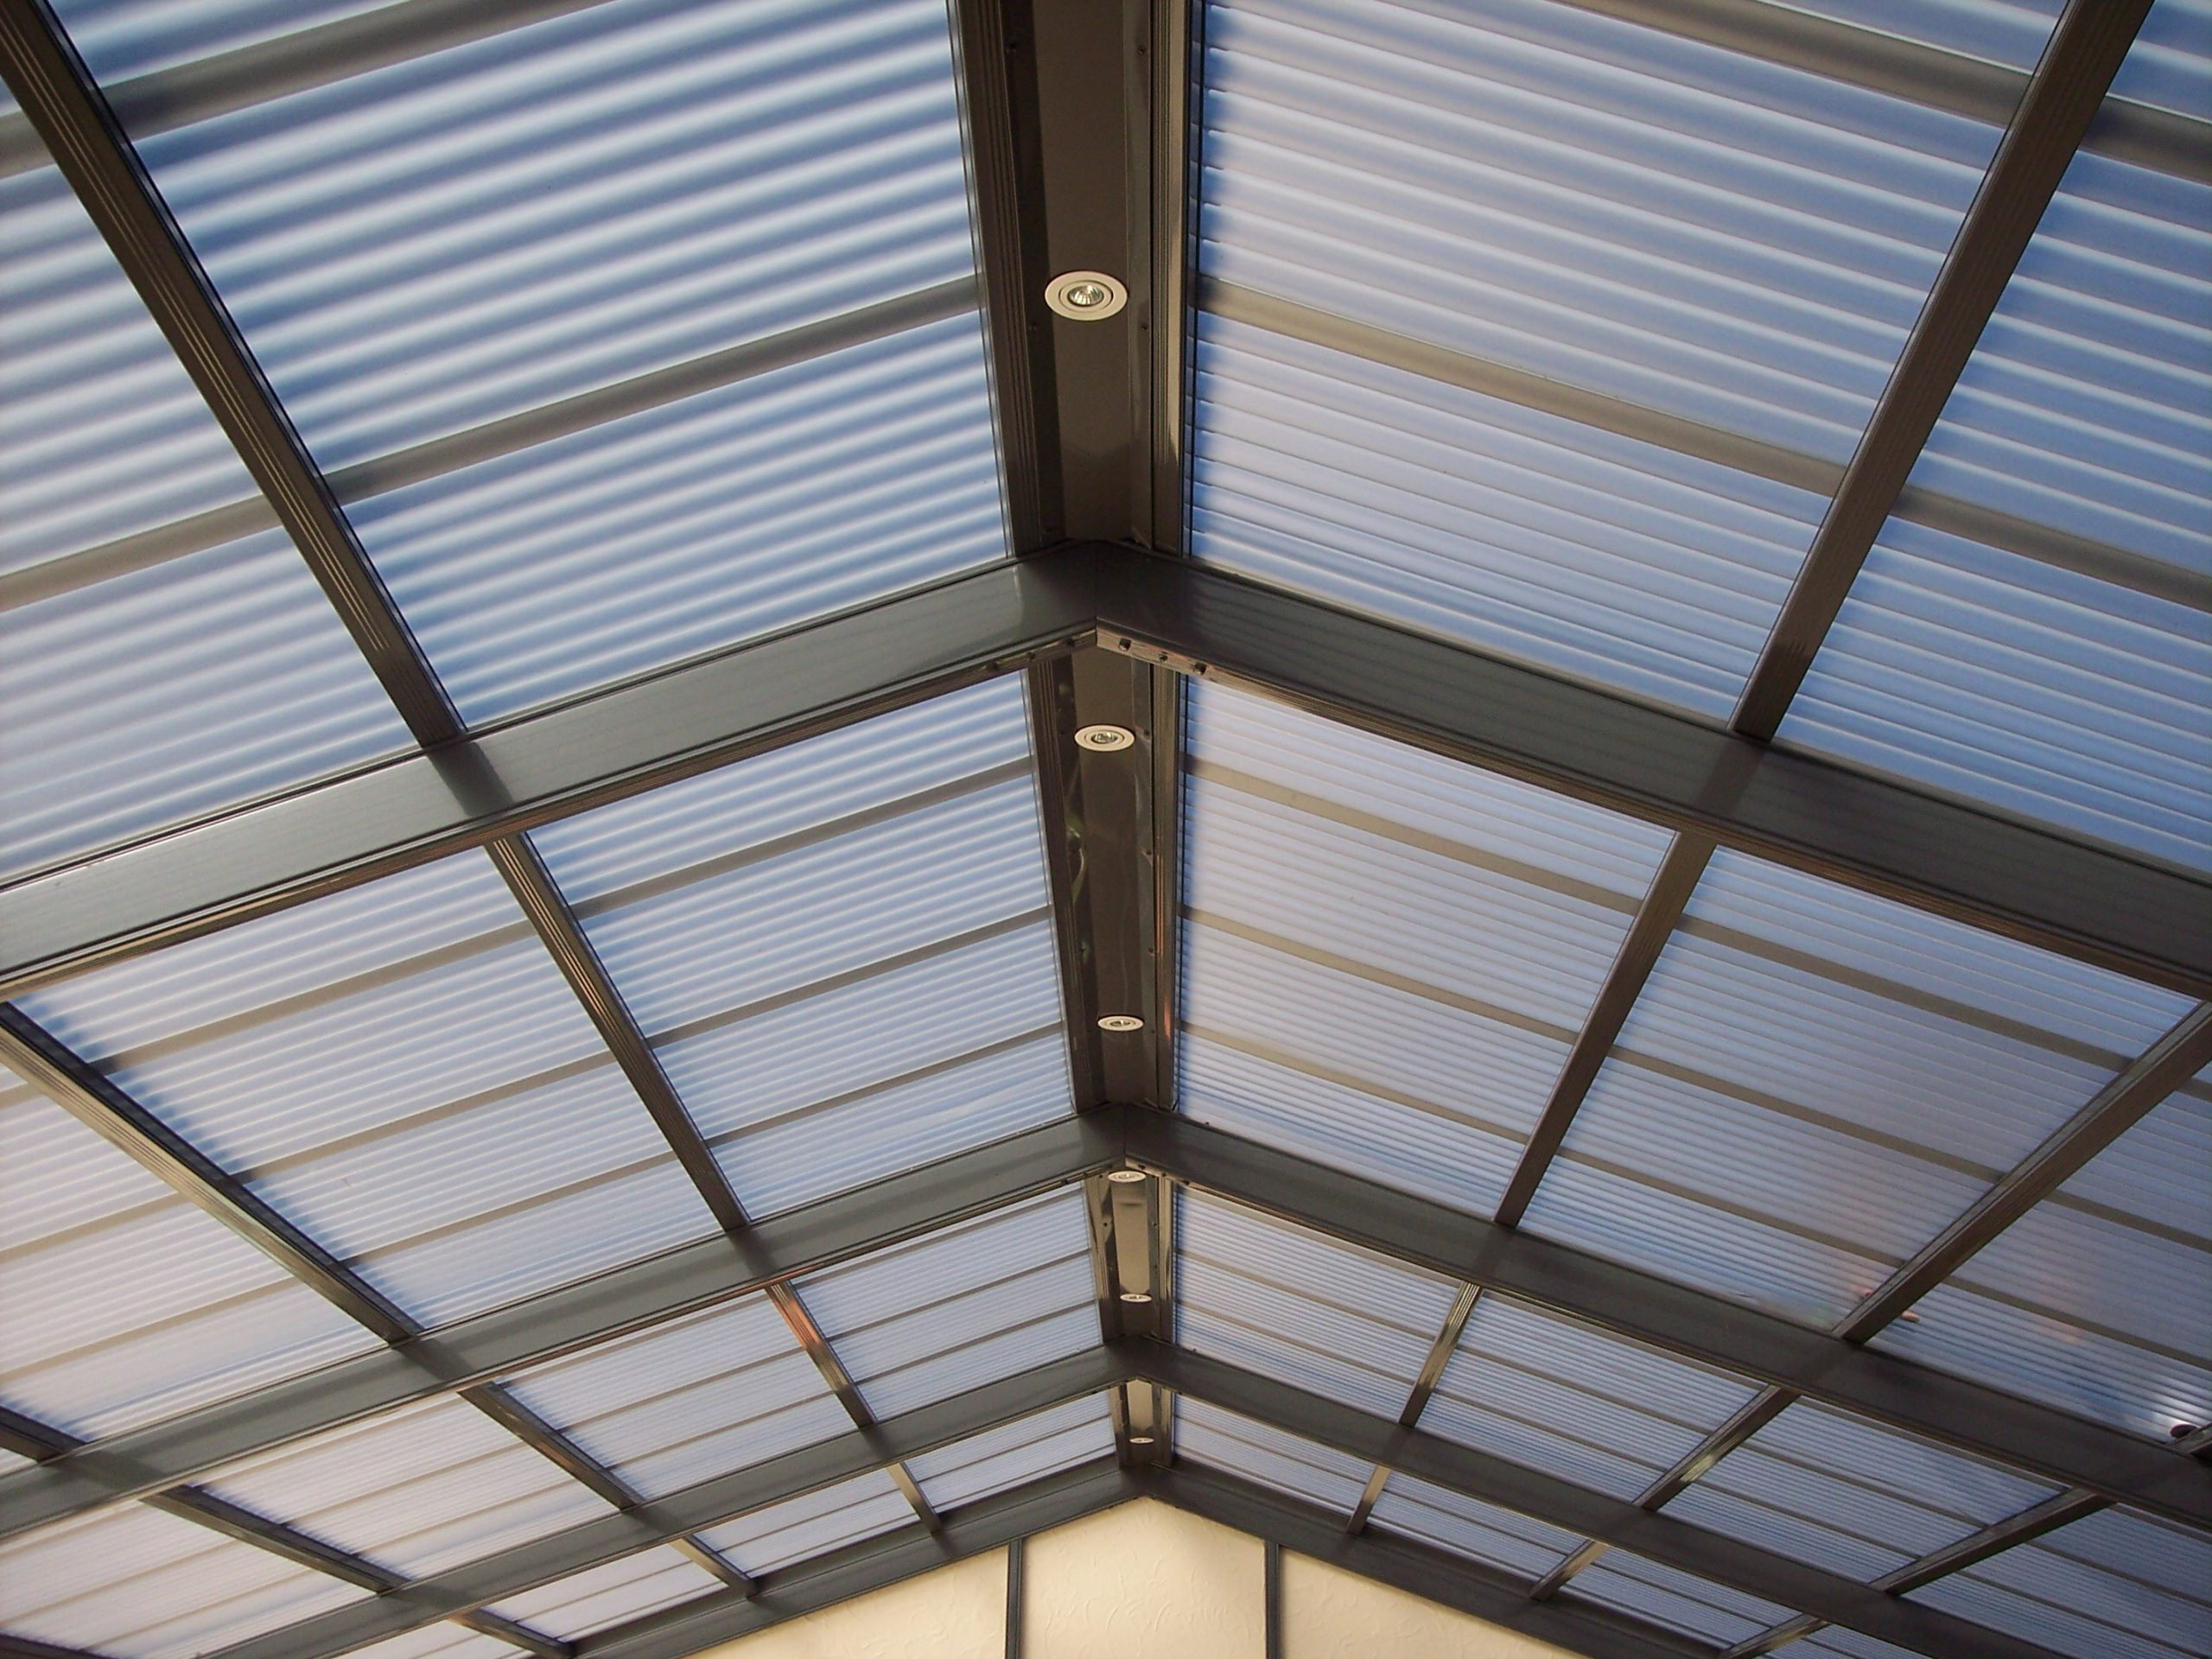 3-Downlights-in-centre-tray-of-Verandah-scaled